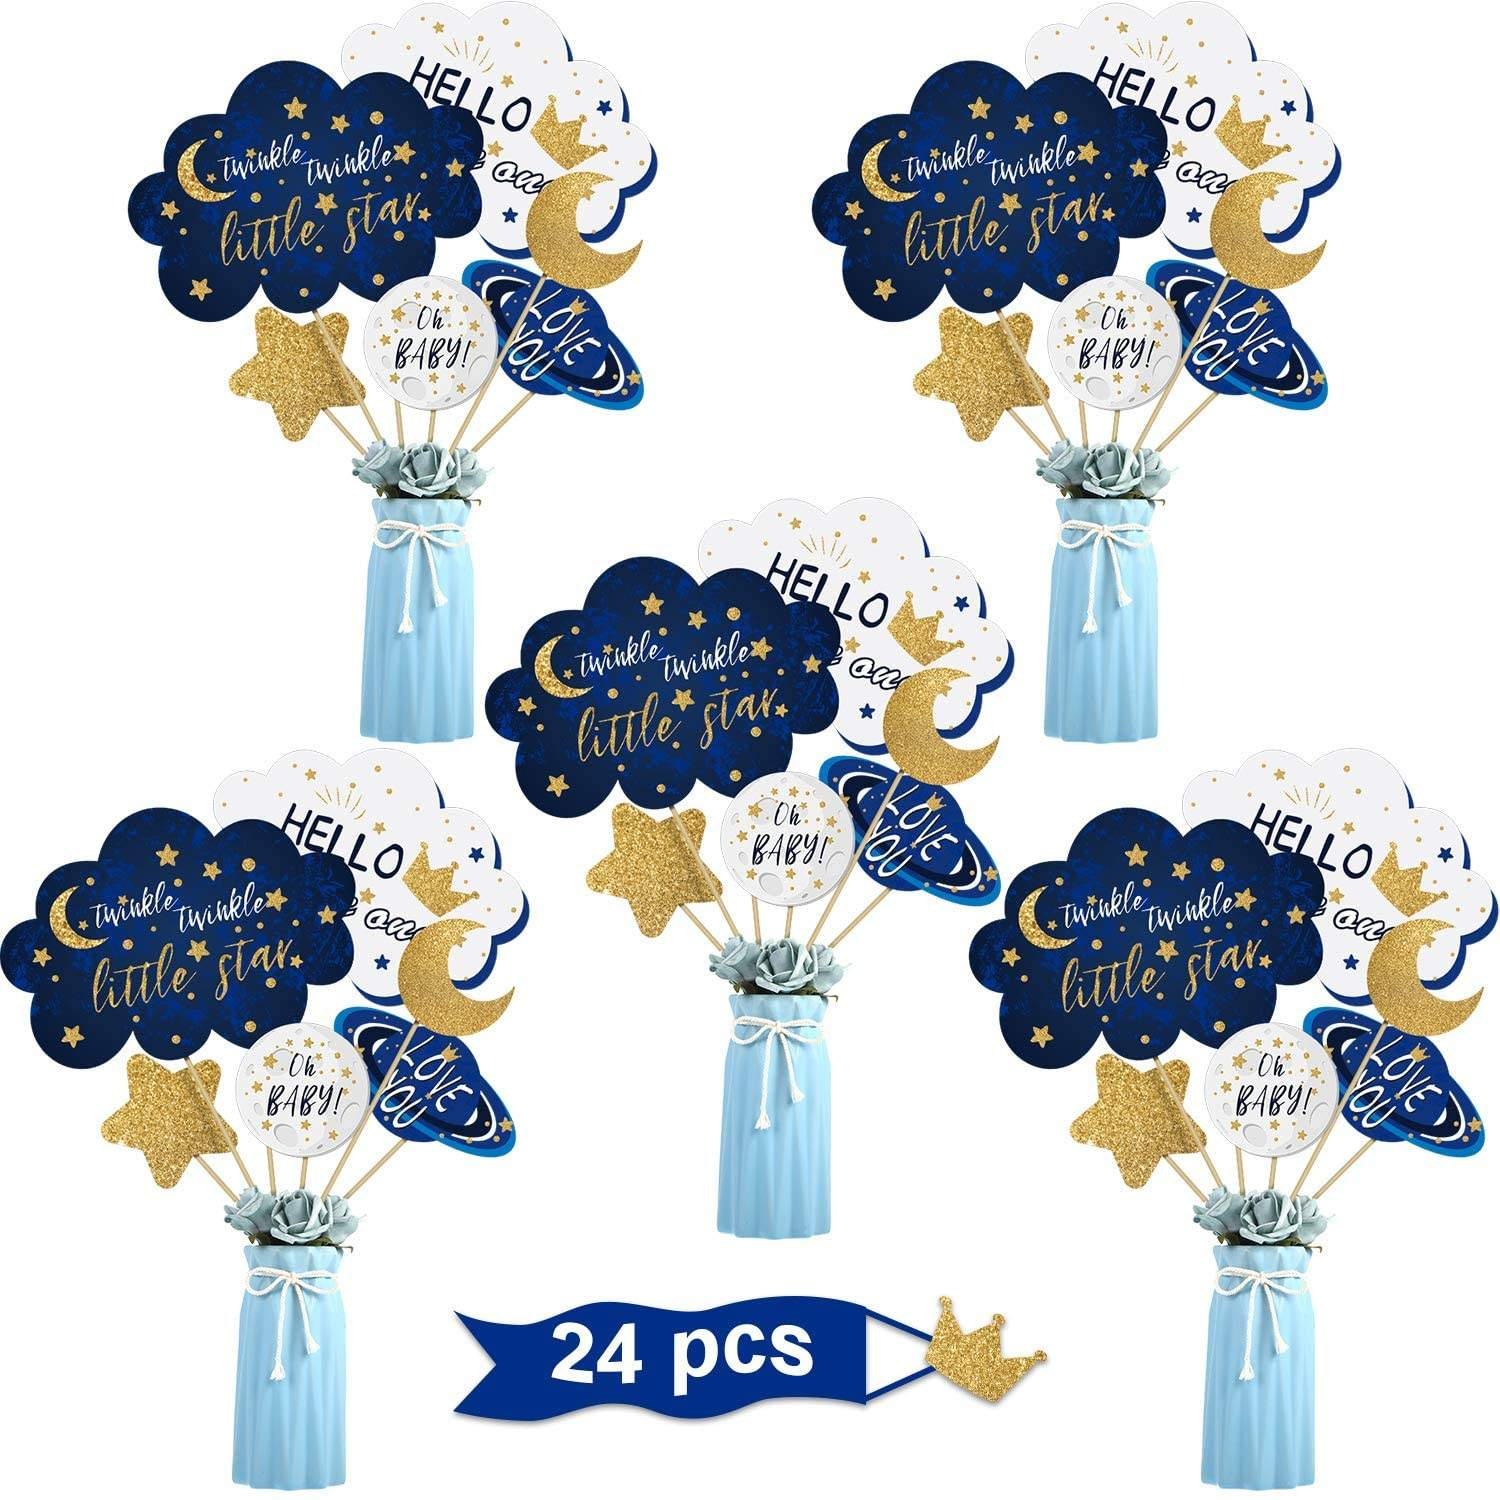 24 Pcs Twinkle Little Star Table Toppers Birthday Party Supplies Baby Shower Decorations